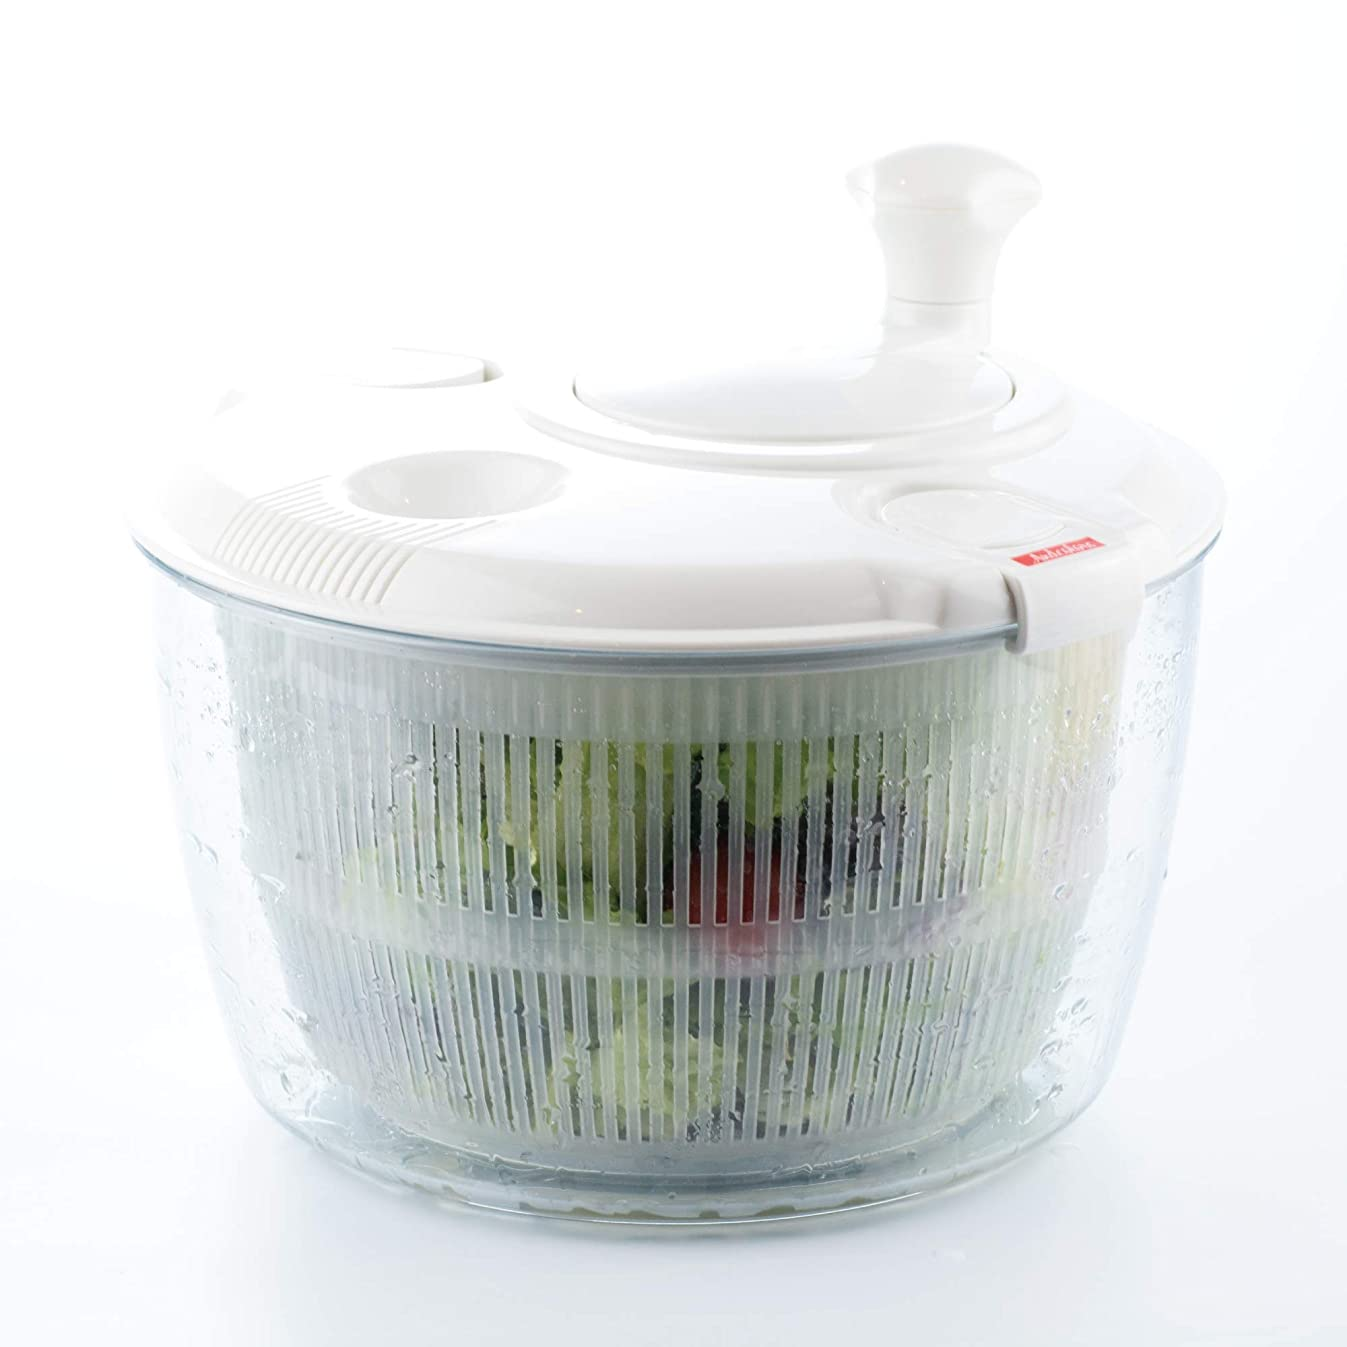 Andcolors Deluxe Salad Spinner Large 4.7 qt Size BPA Free Clips & Locking Tabs for Safety Dry & Drain Lettuce Easily for Crisper Salads in Half the Time Bowl Goes from Prep to Table